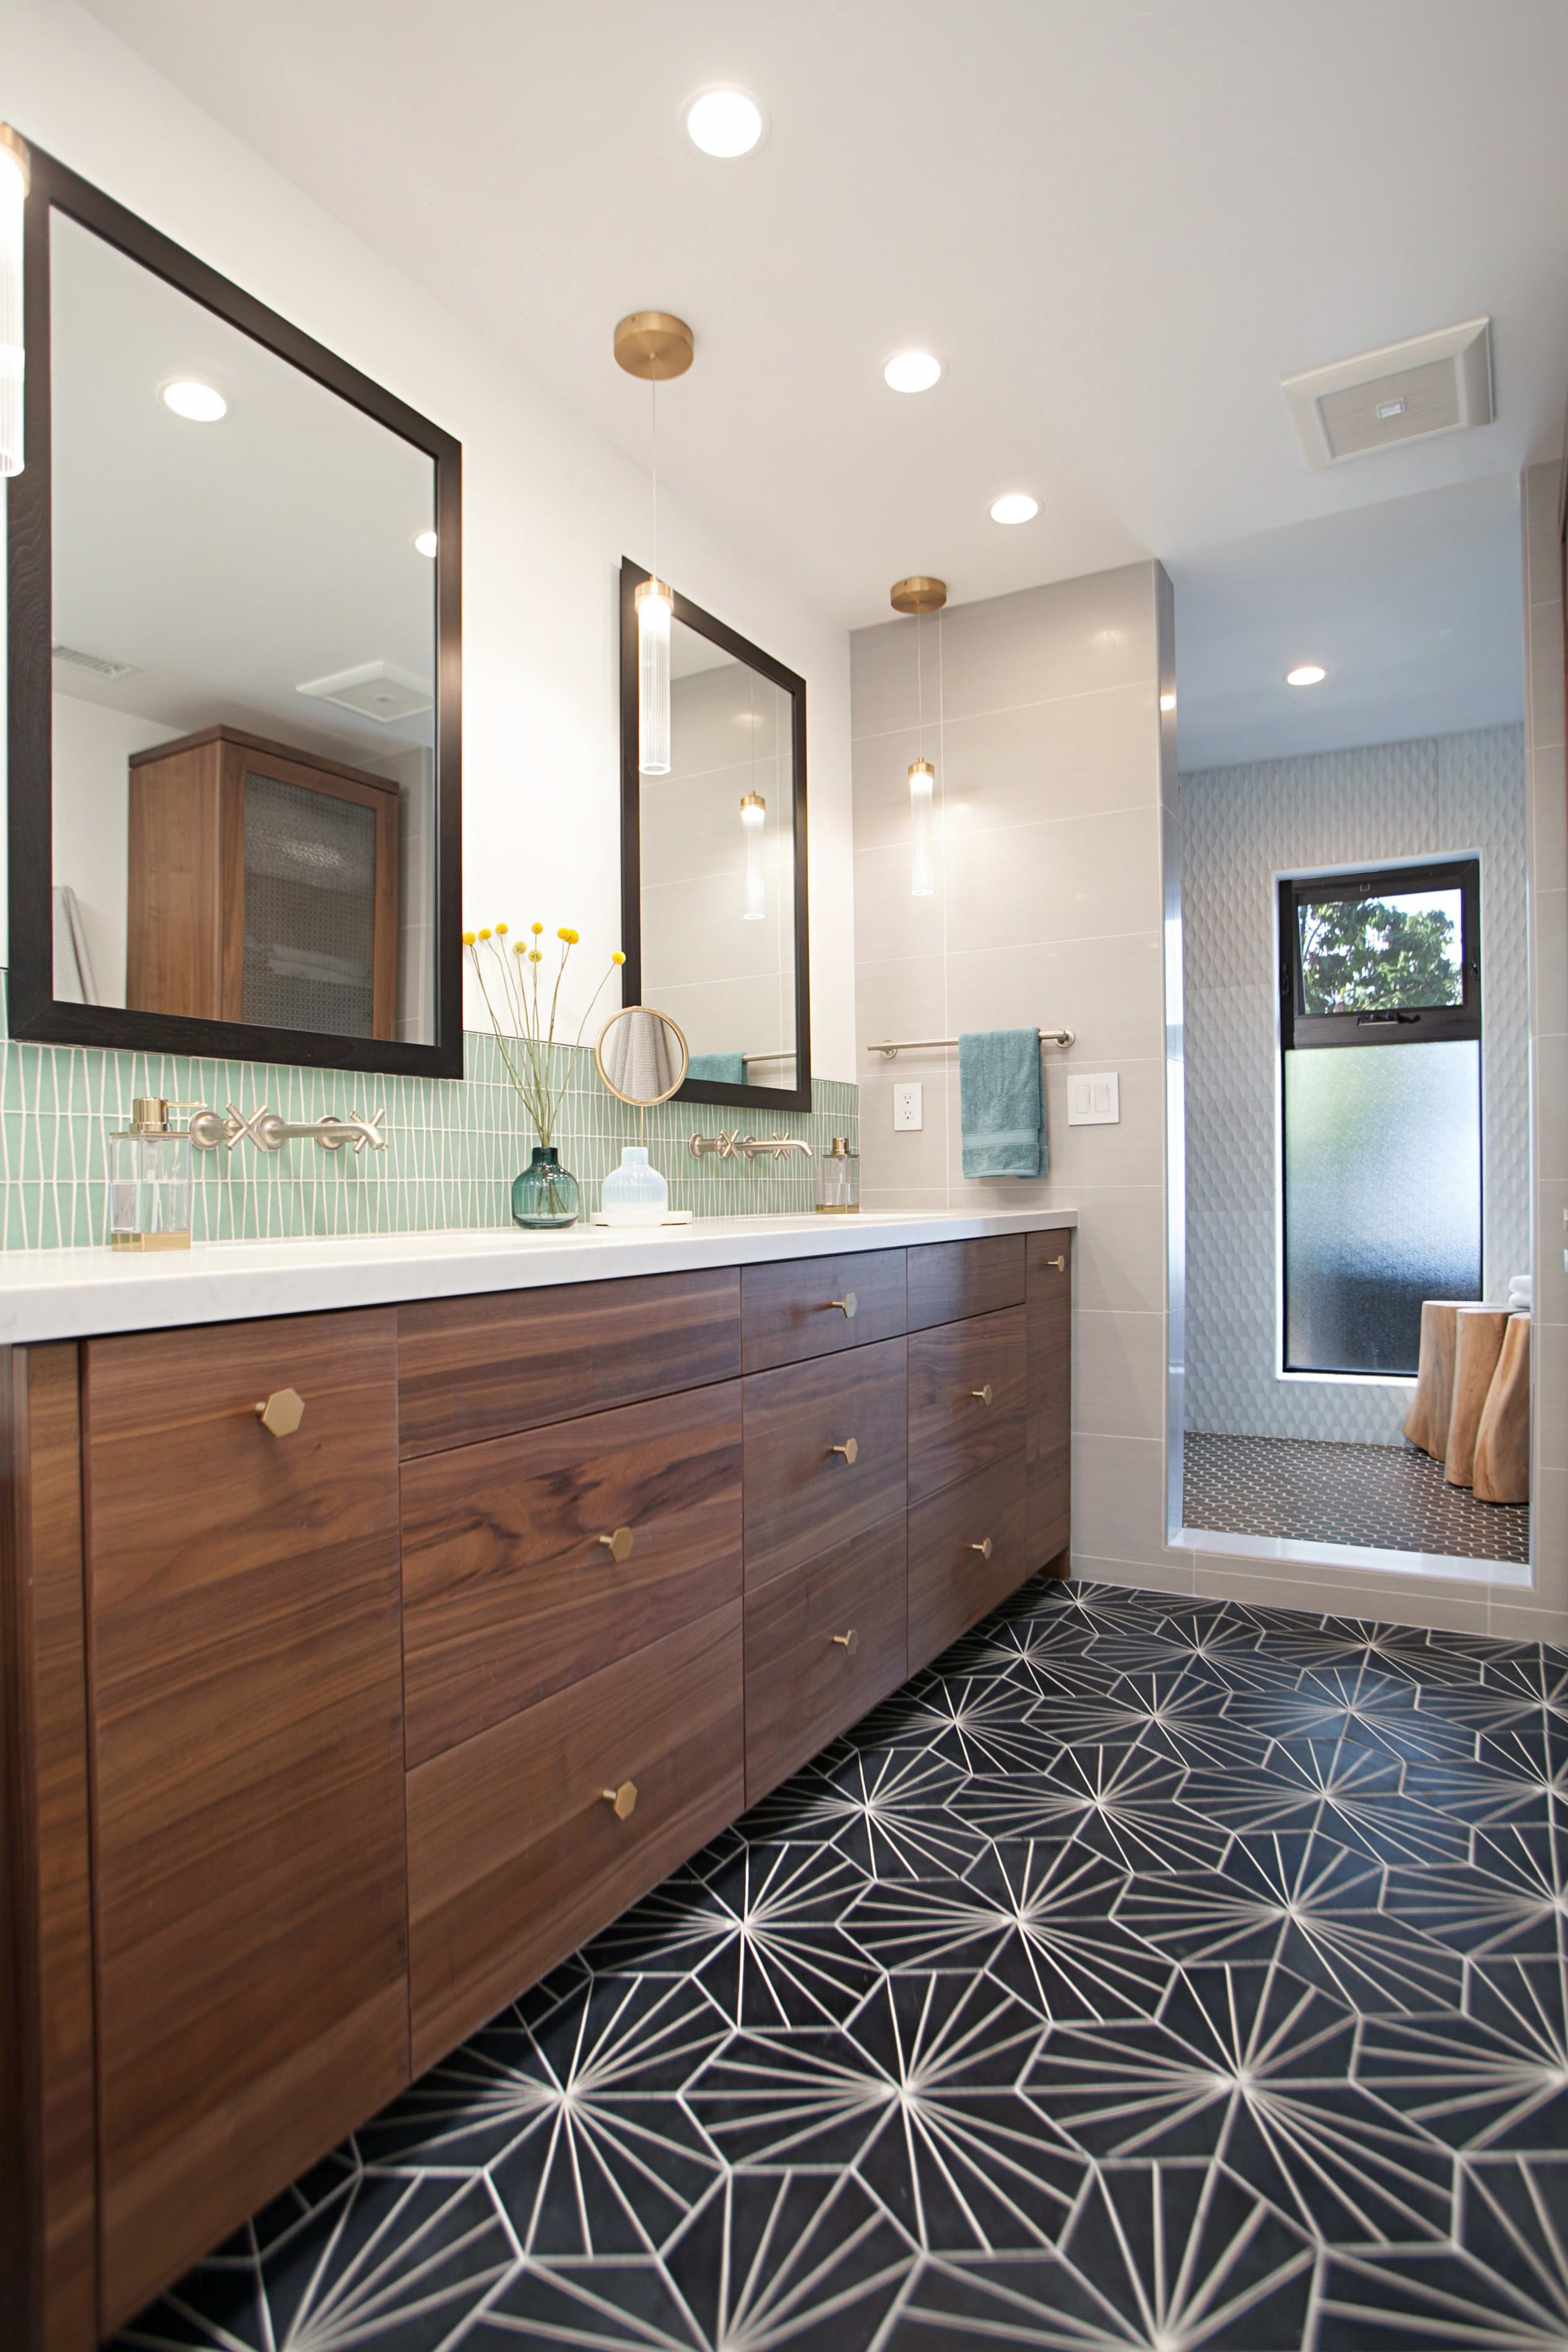 A Renovated 1950s House Is Full Of Colorful Tile Inspiration Master Bathroom Design Bathroom Interior Design Modern Bathroom Design